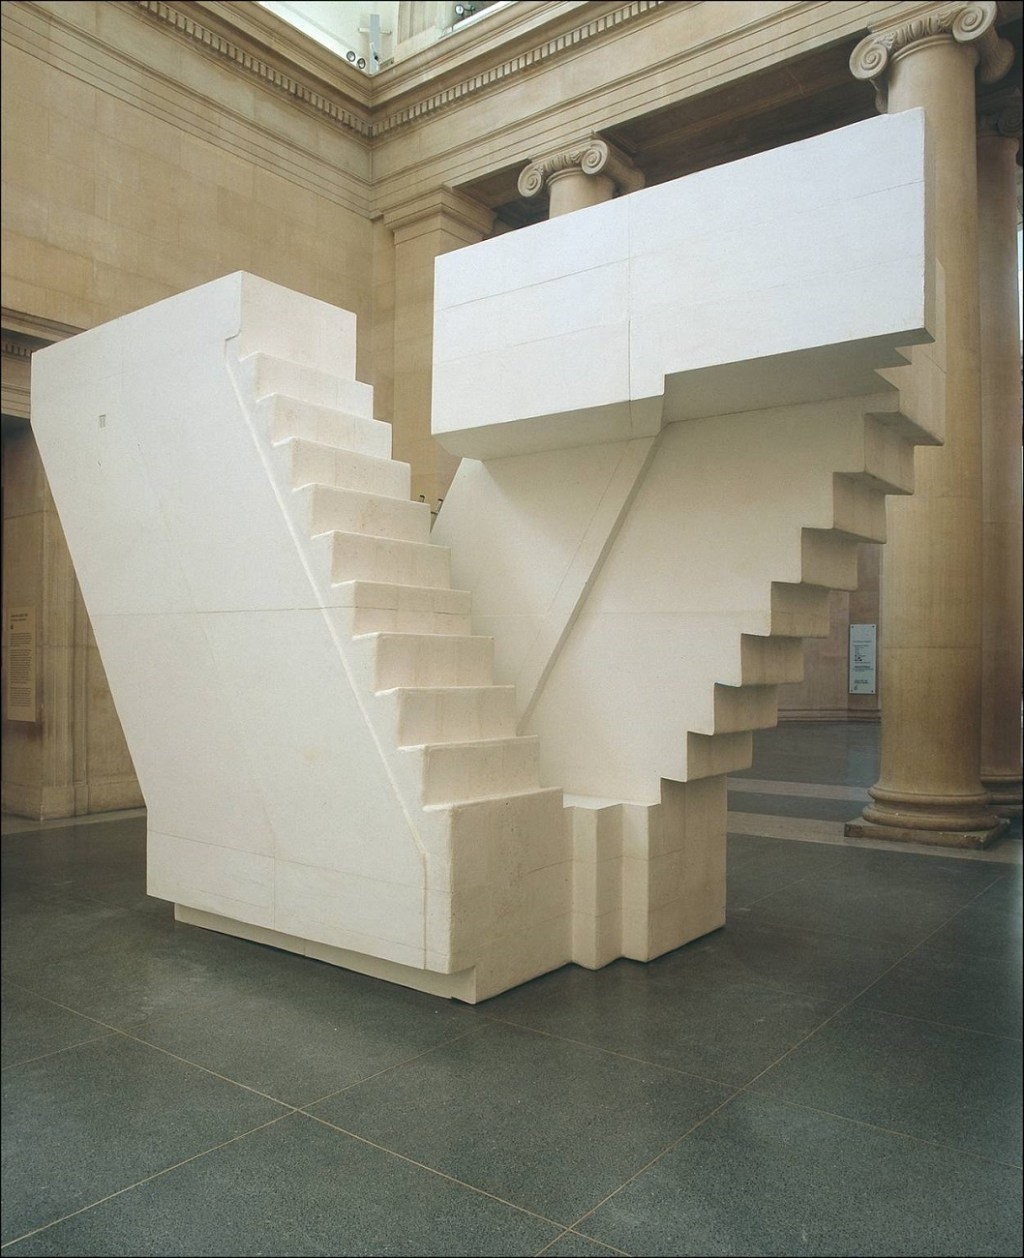 Untitled (Stairs) 2001 by Rachel Whiteread born 1963